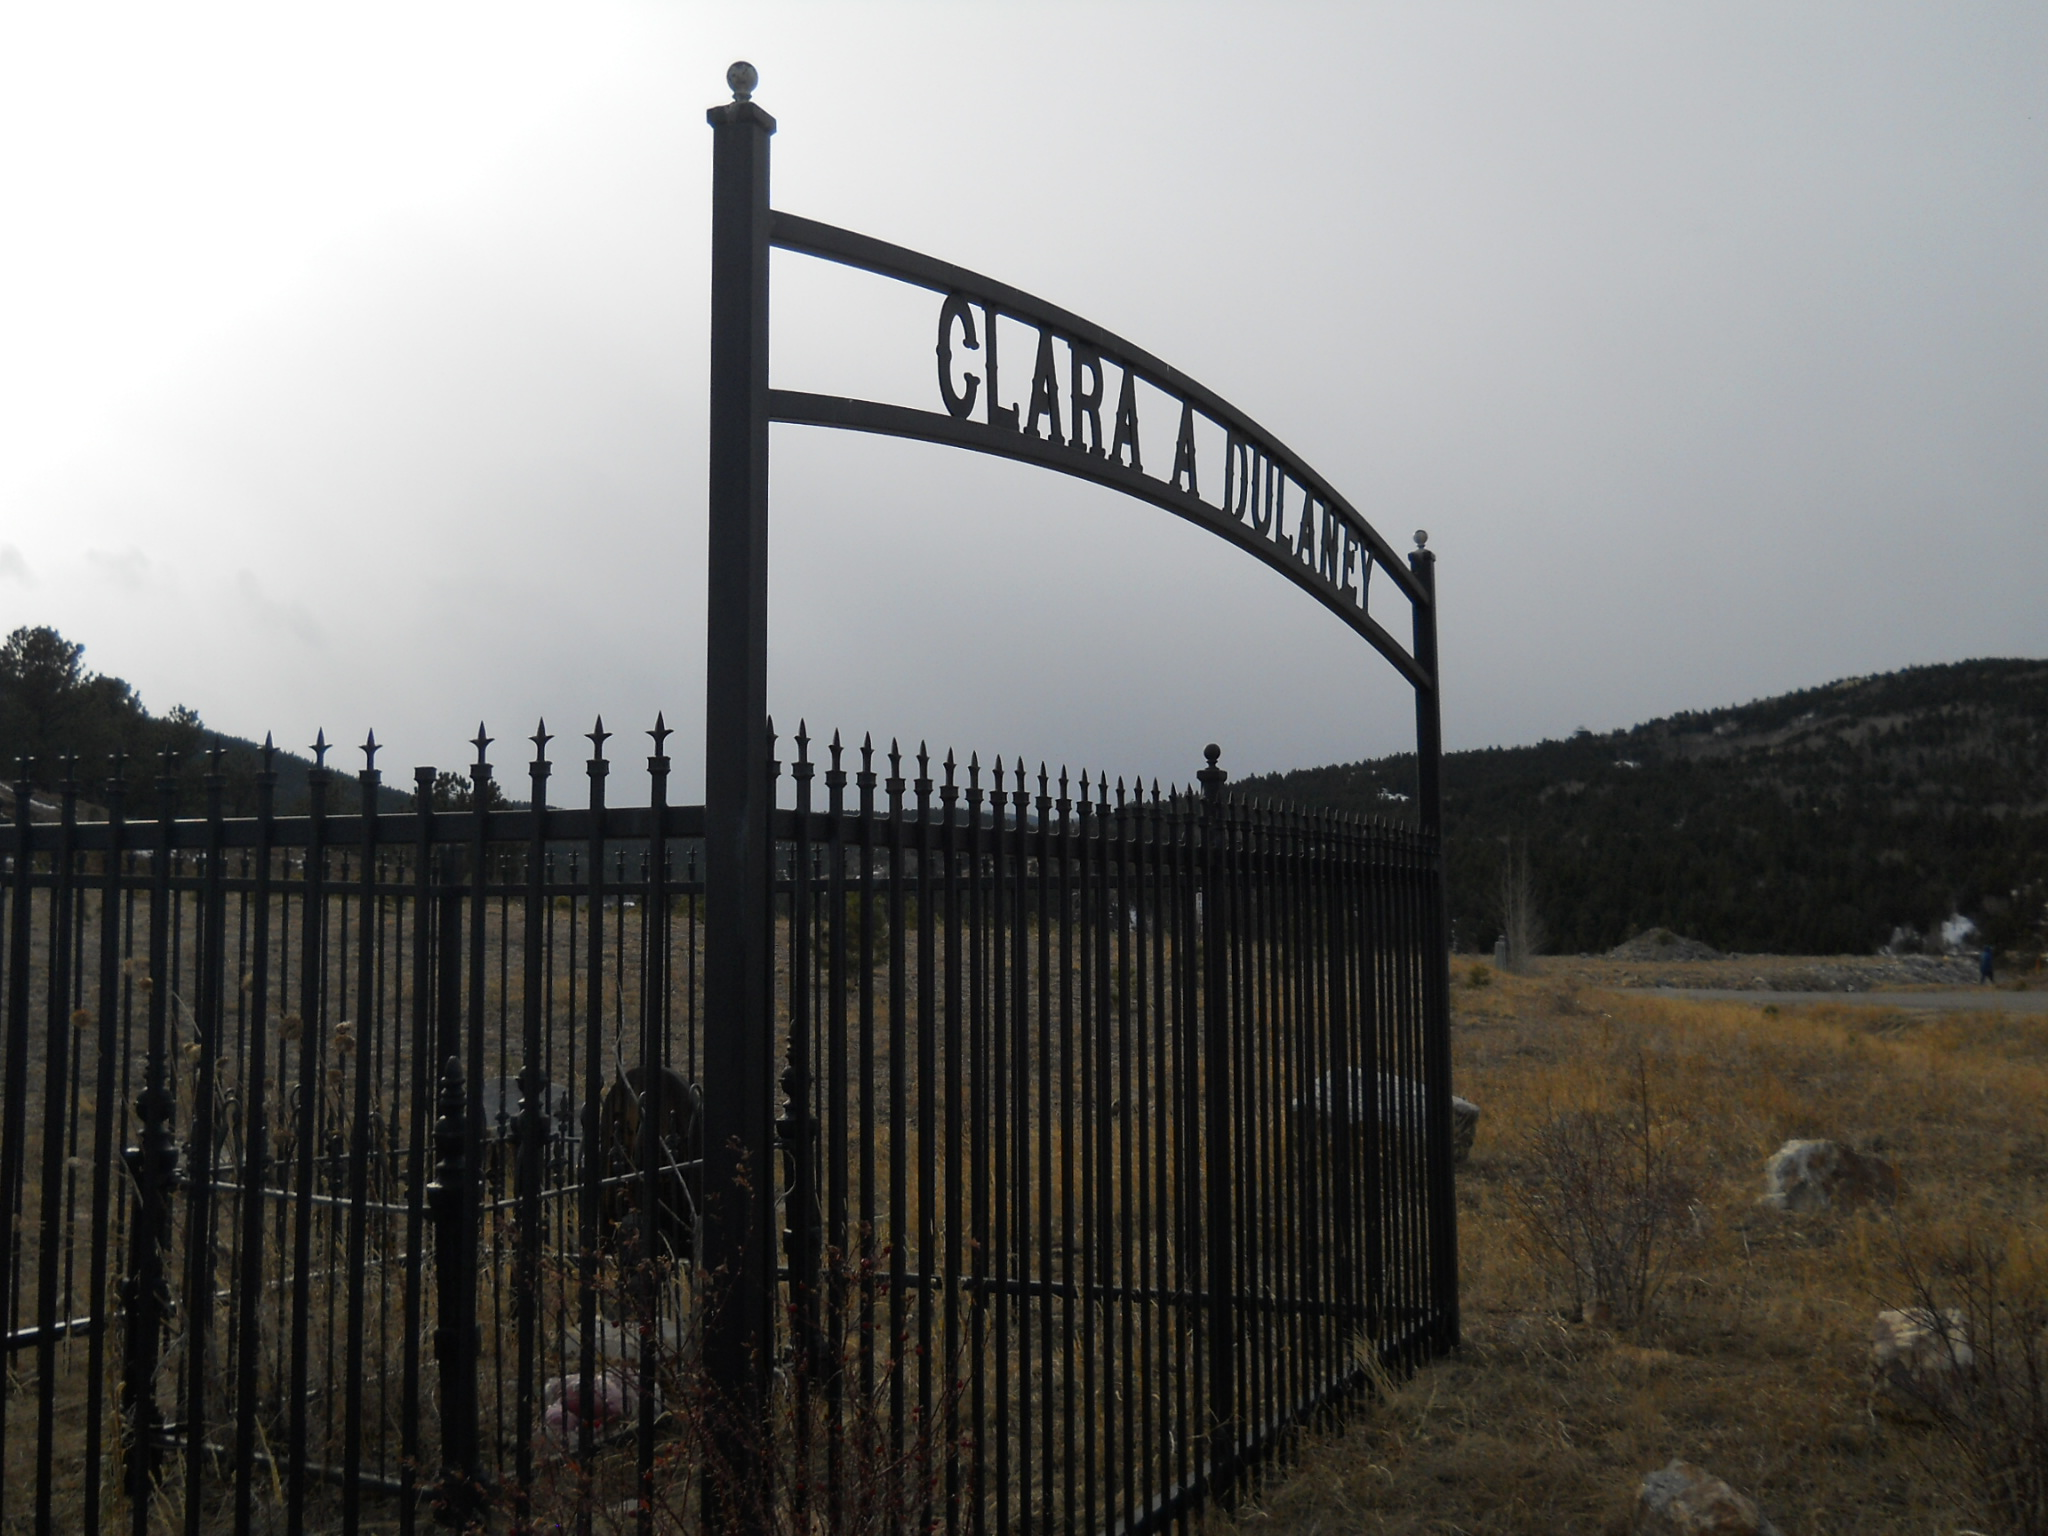 Iron fenced gravesite